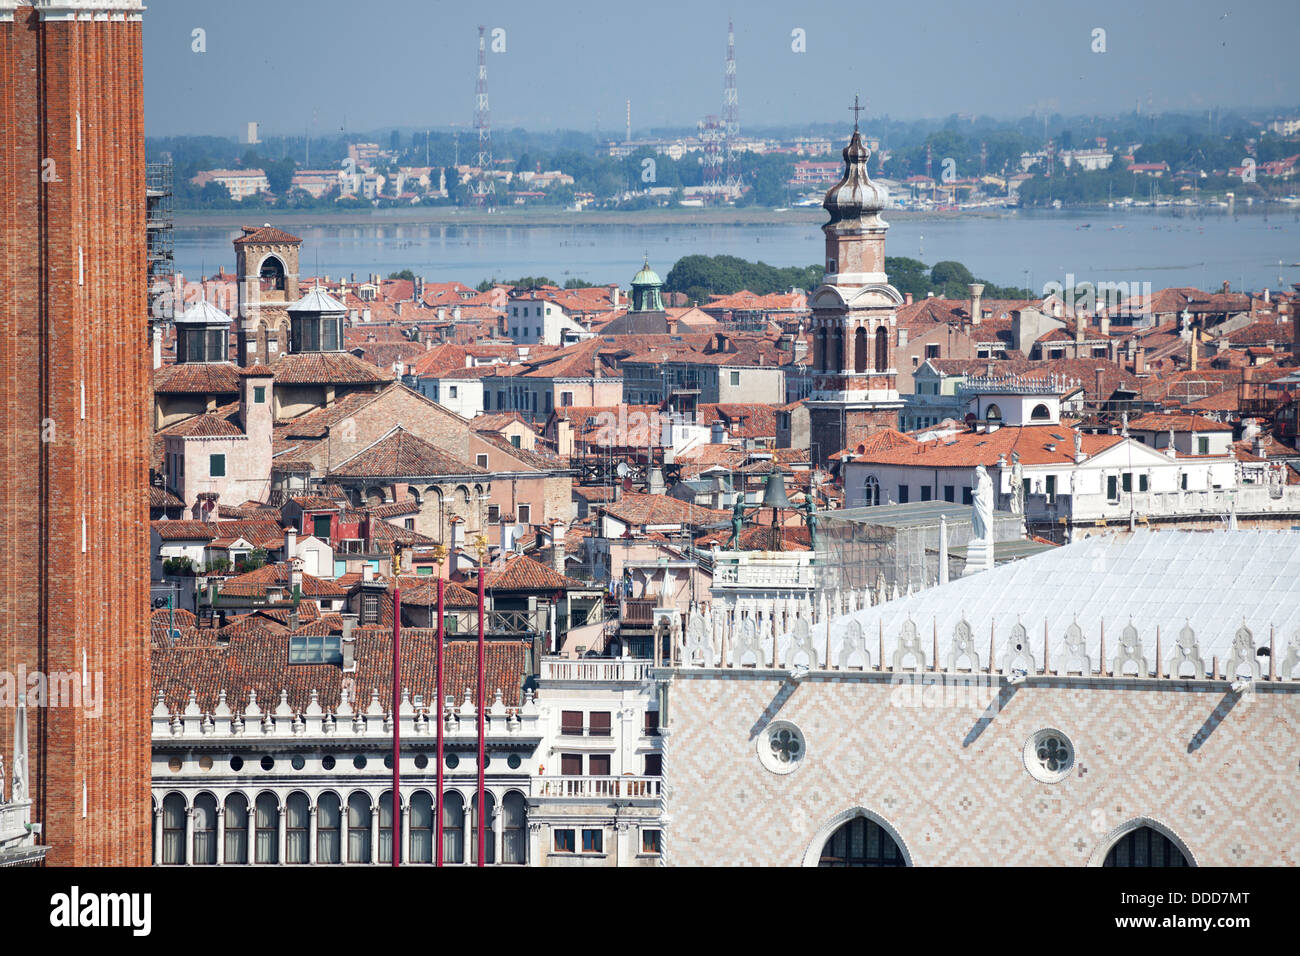 In the north of St Mark's Square, the roofs of Venice with a view on the suburbs of Mestre in the background - Stock Image